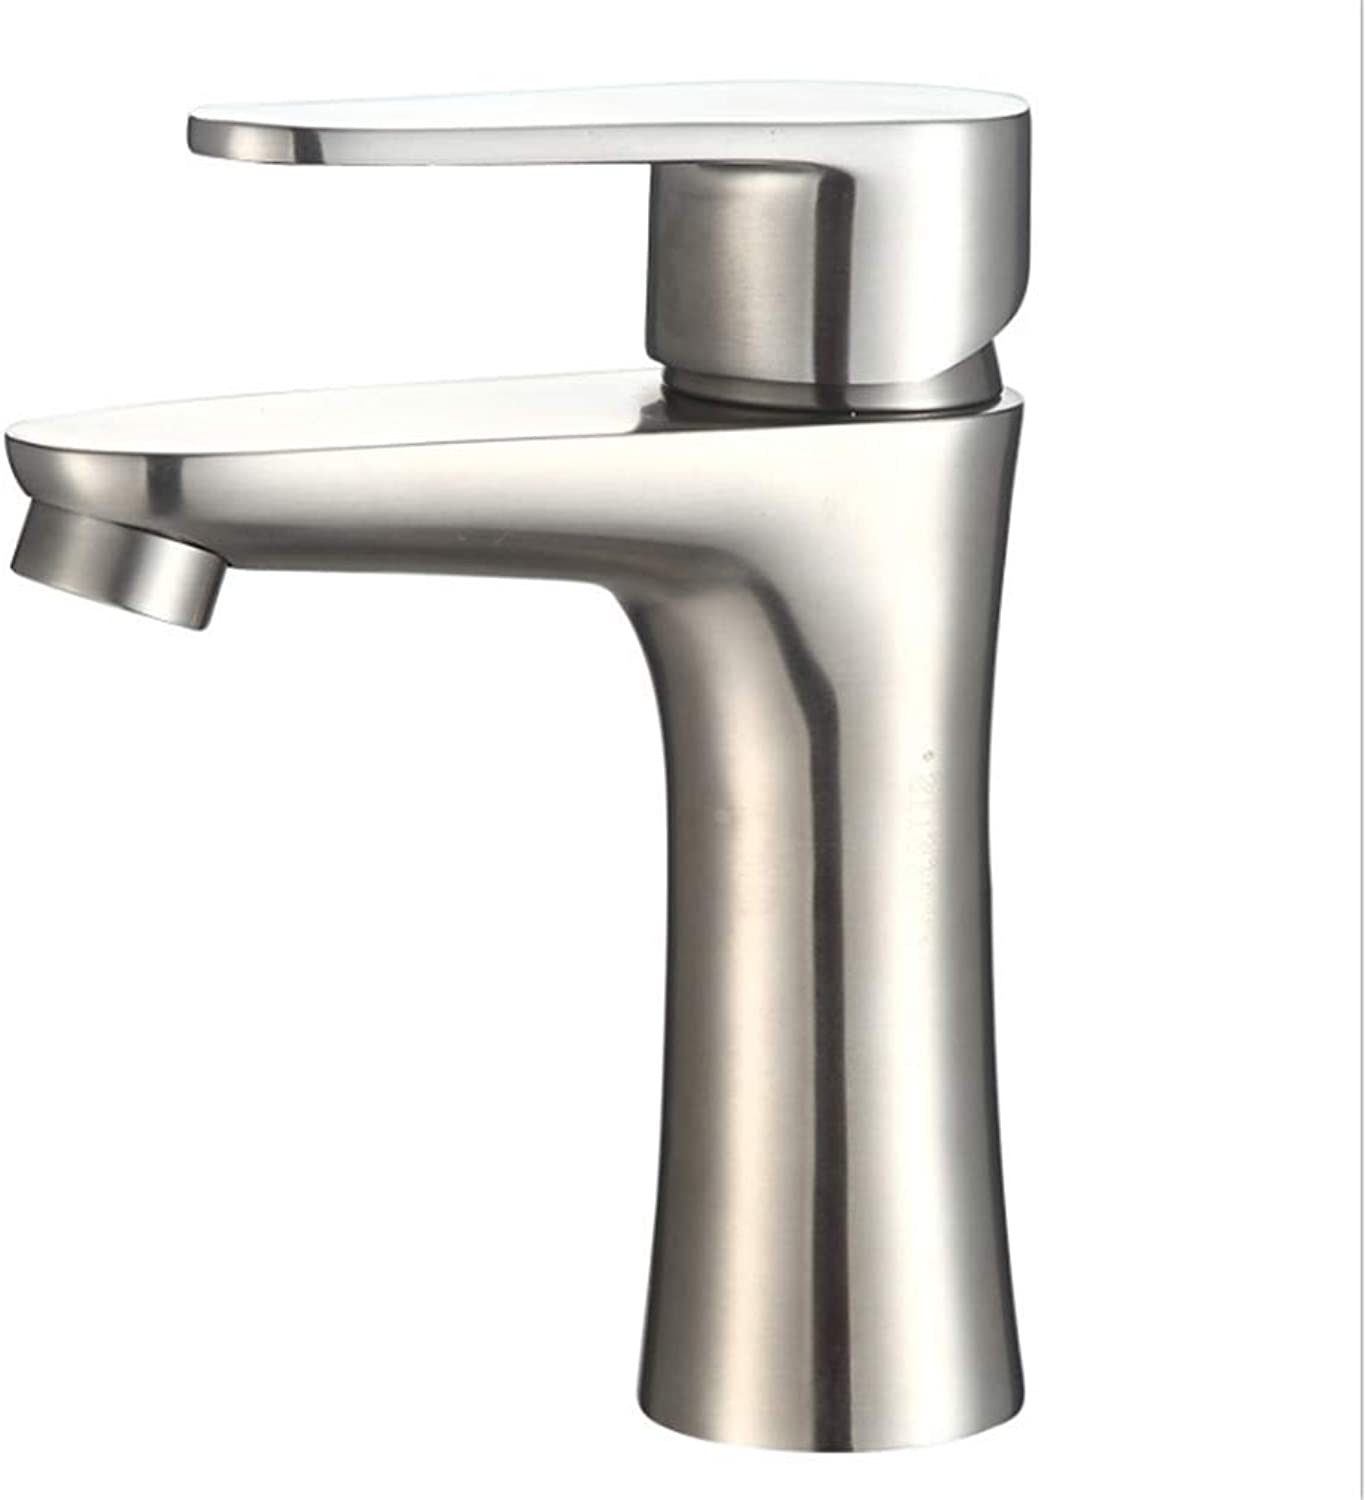 Kitchen Taps Faucet Modern Kitchen Sink Taps Stainless Steelfacebasin Washbasin Faucet Single-Hole Cold-Hot Water Mixing Valve